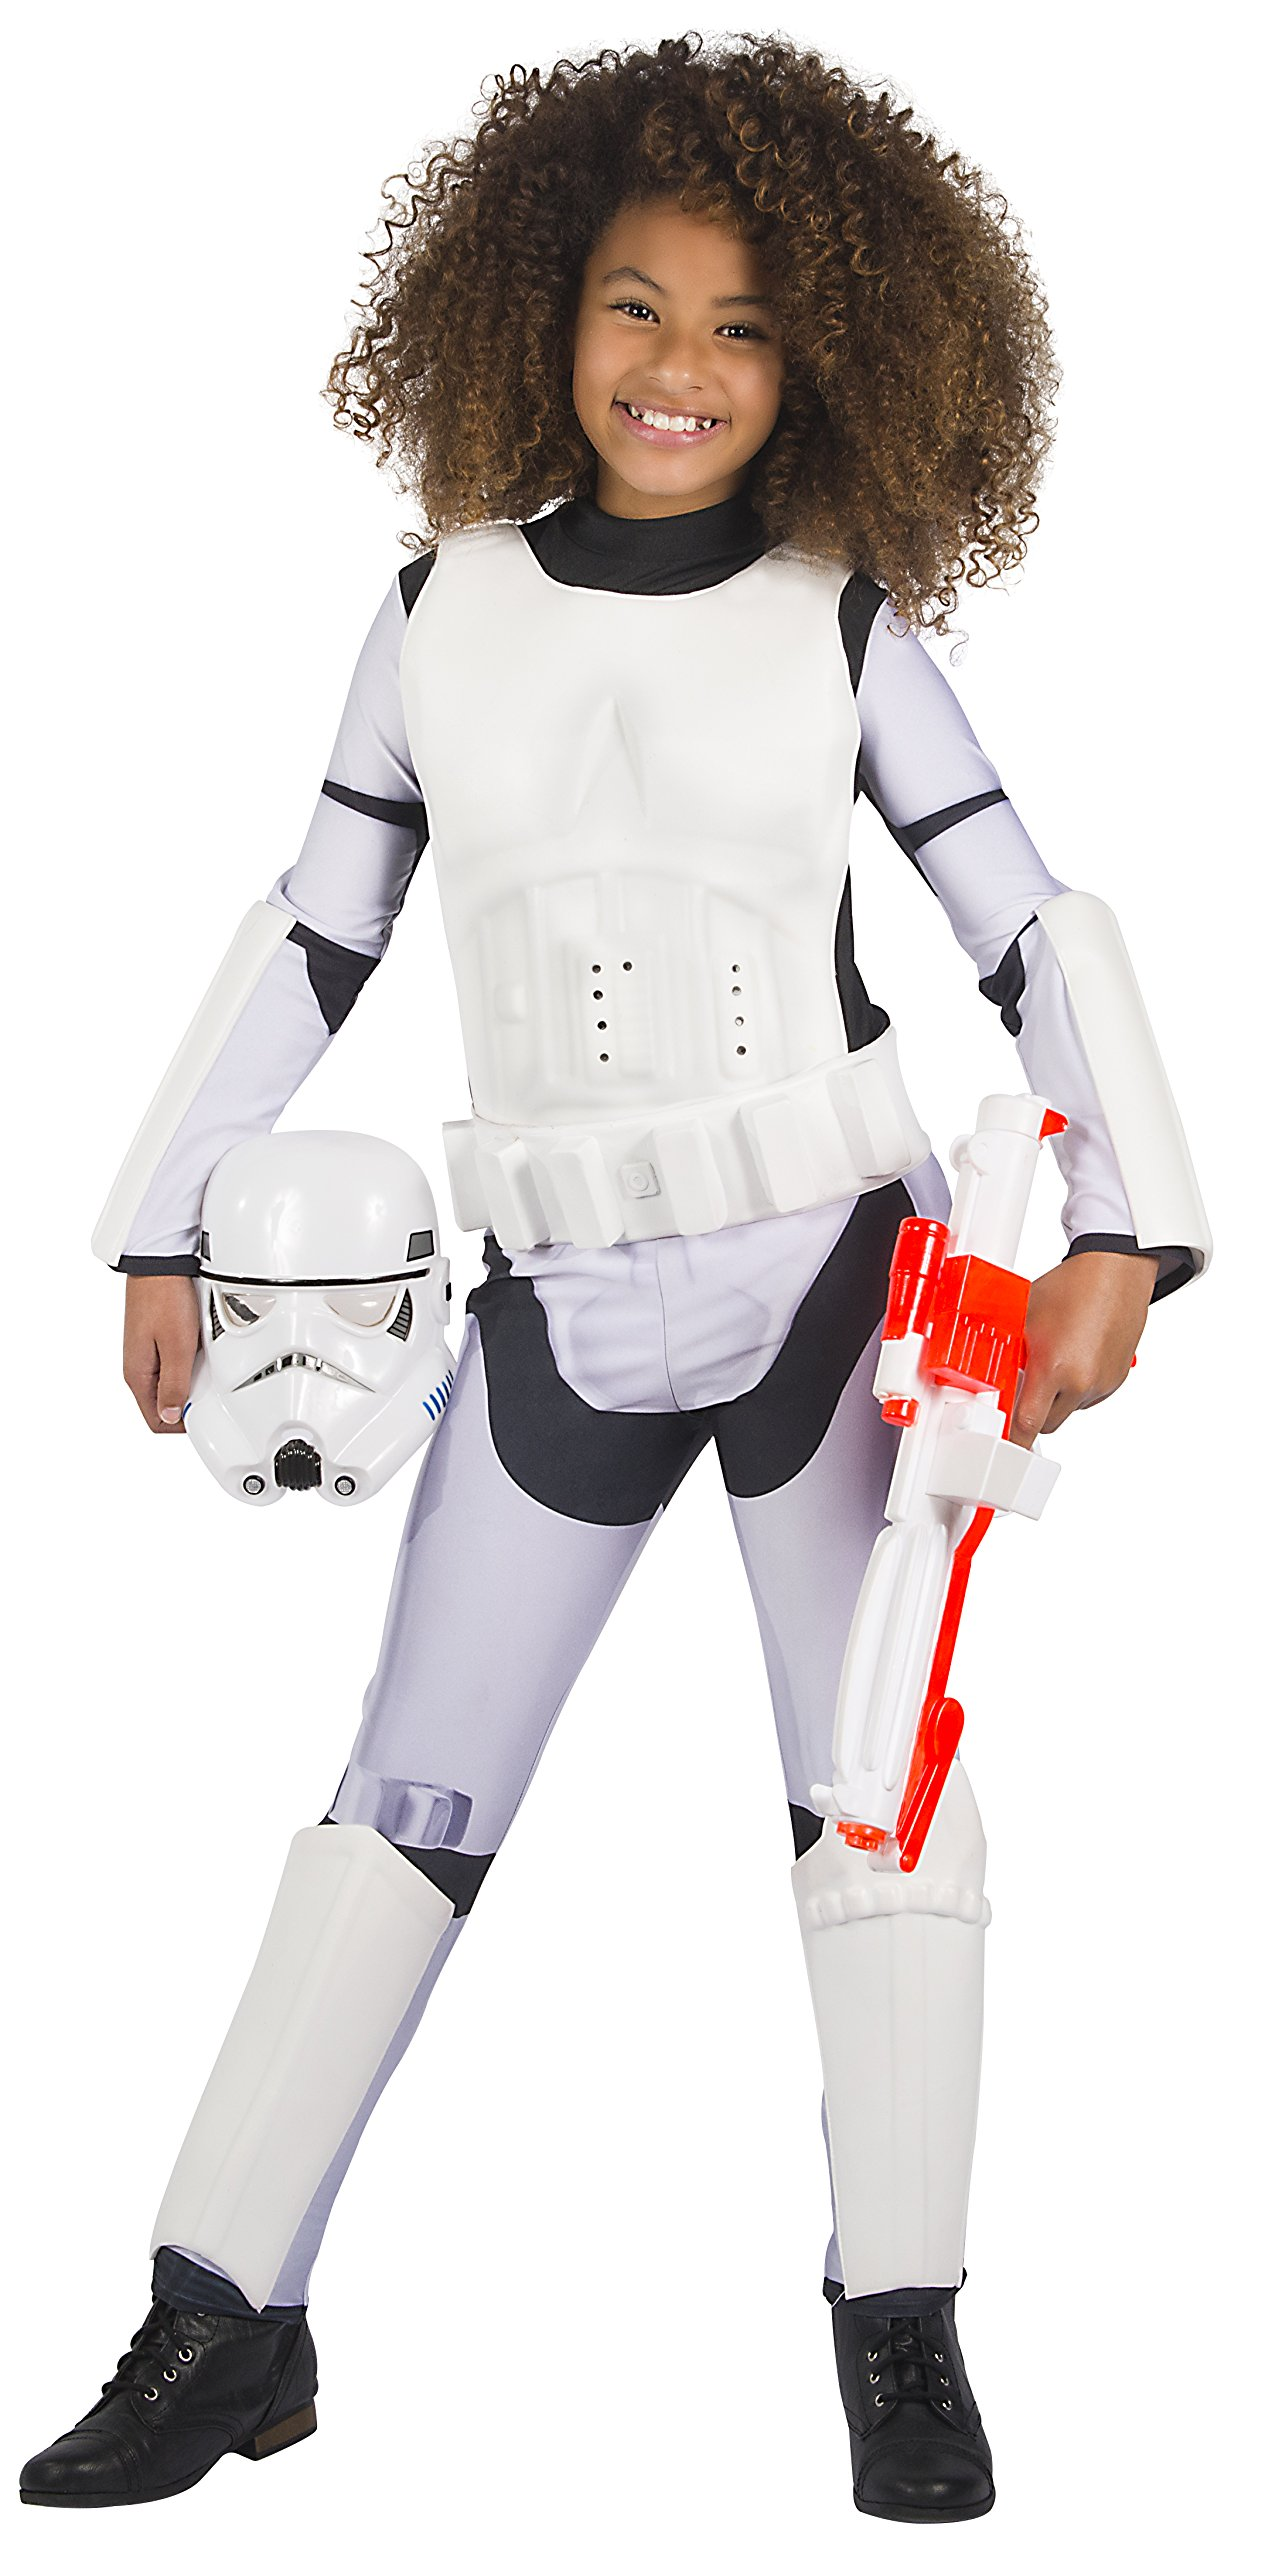 Girls Star Wars Storm Trooper TV Book Film Halloween Fancy Dress Costume Outfit